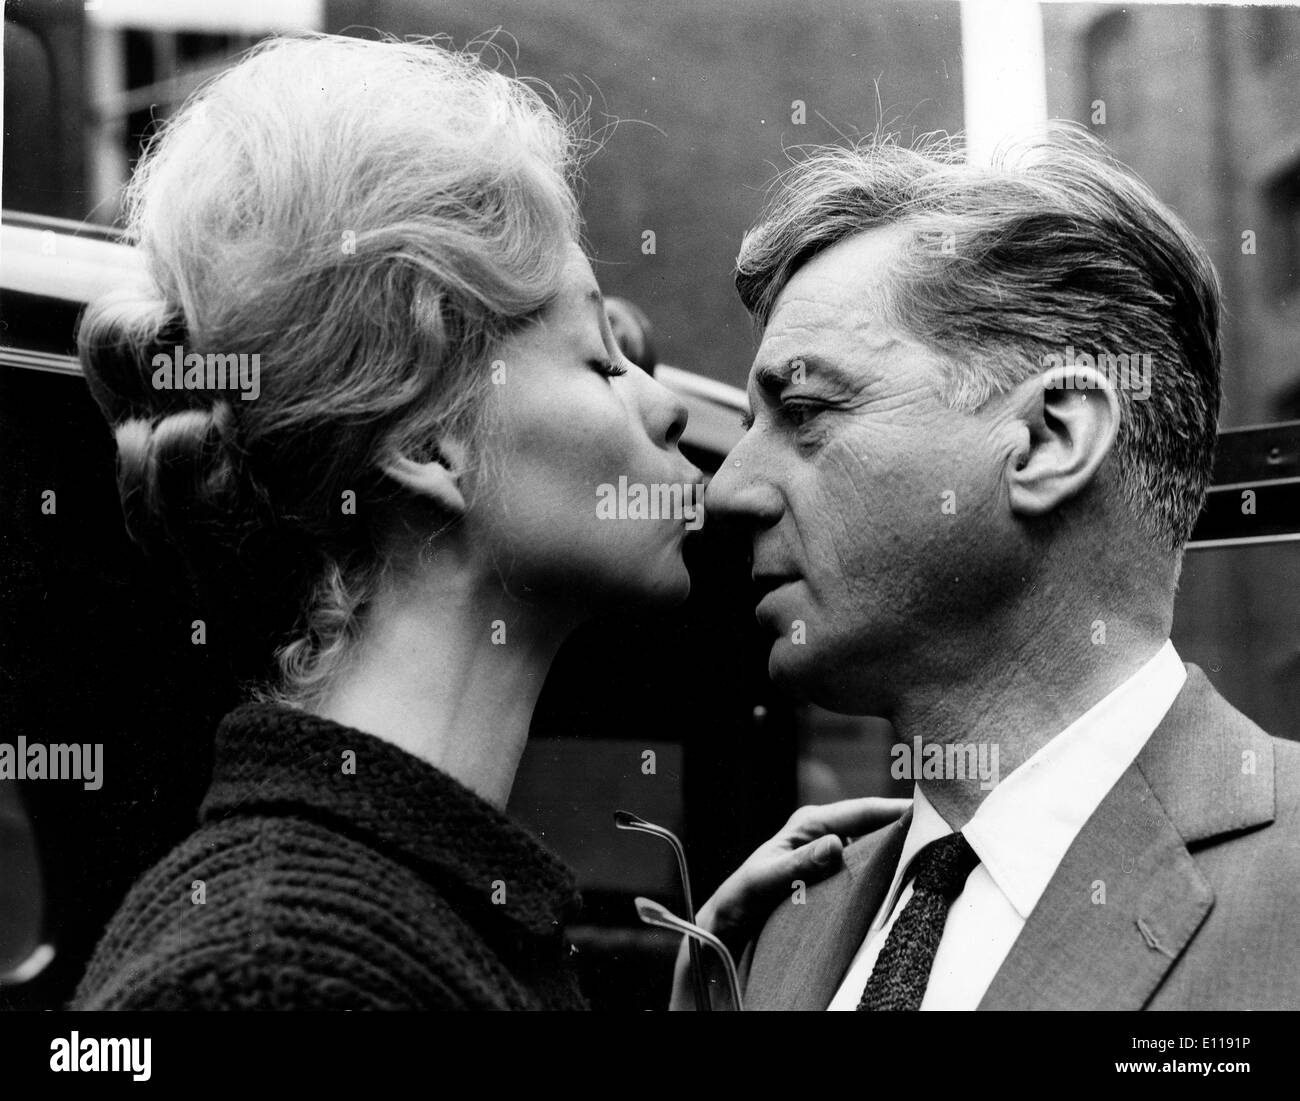 Actor Claude Dauphin greets wife at station Stock Photo